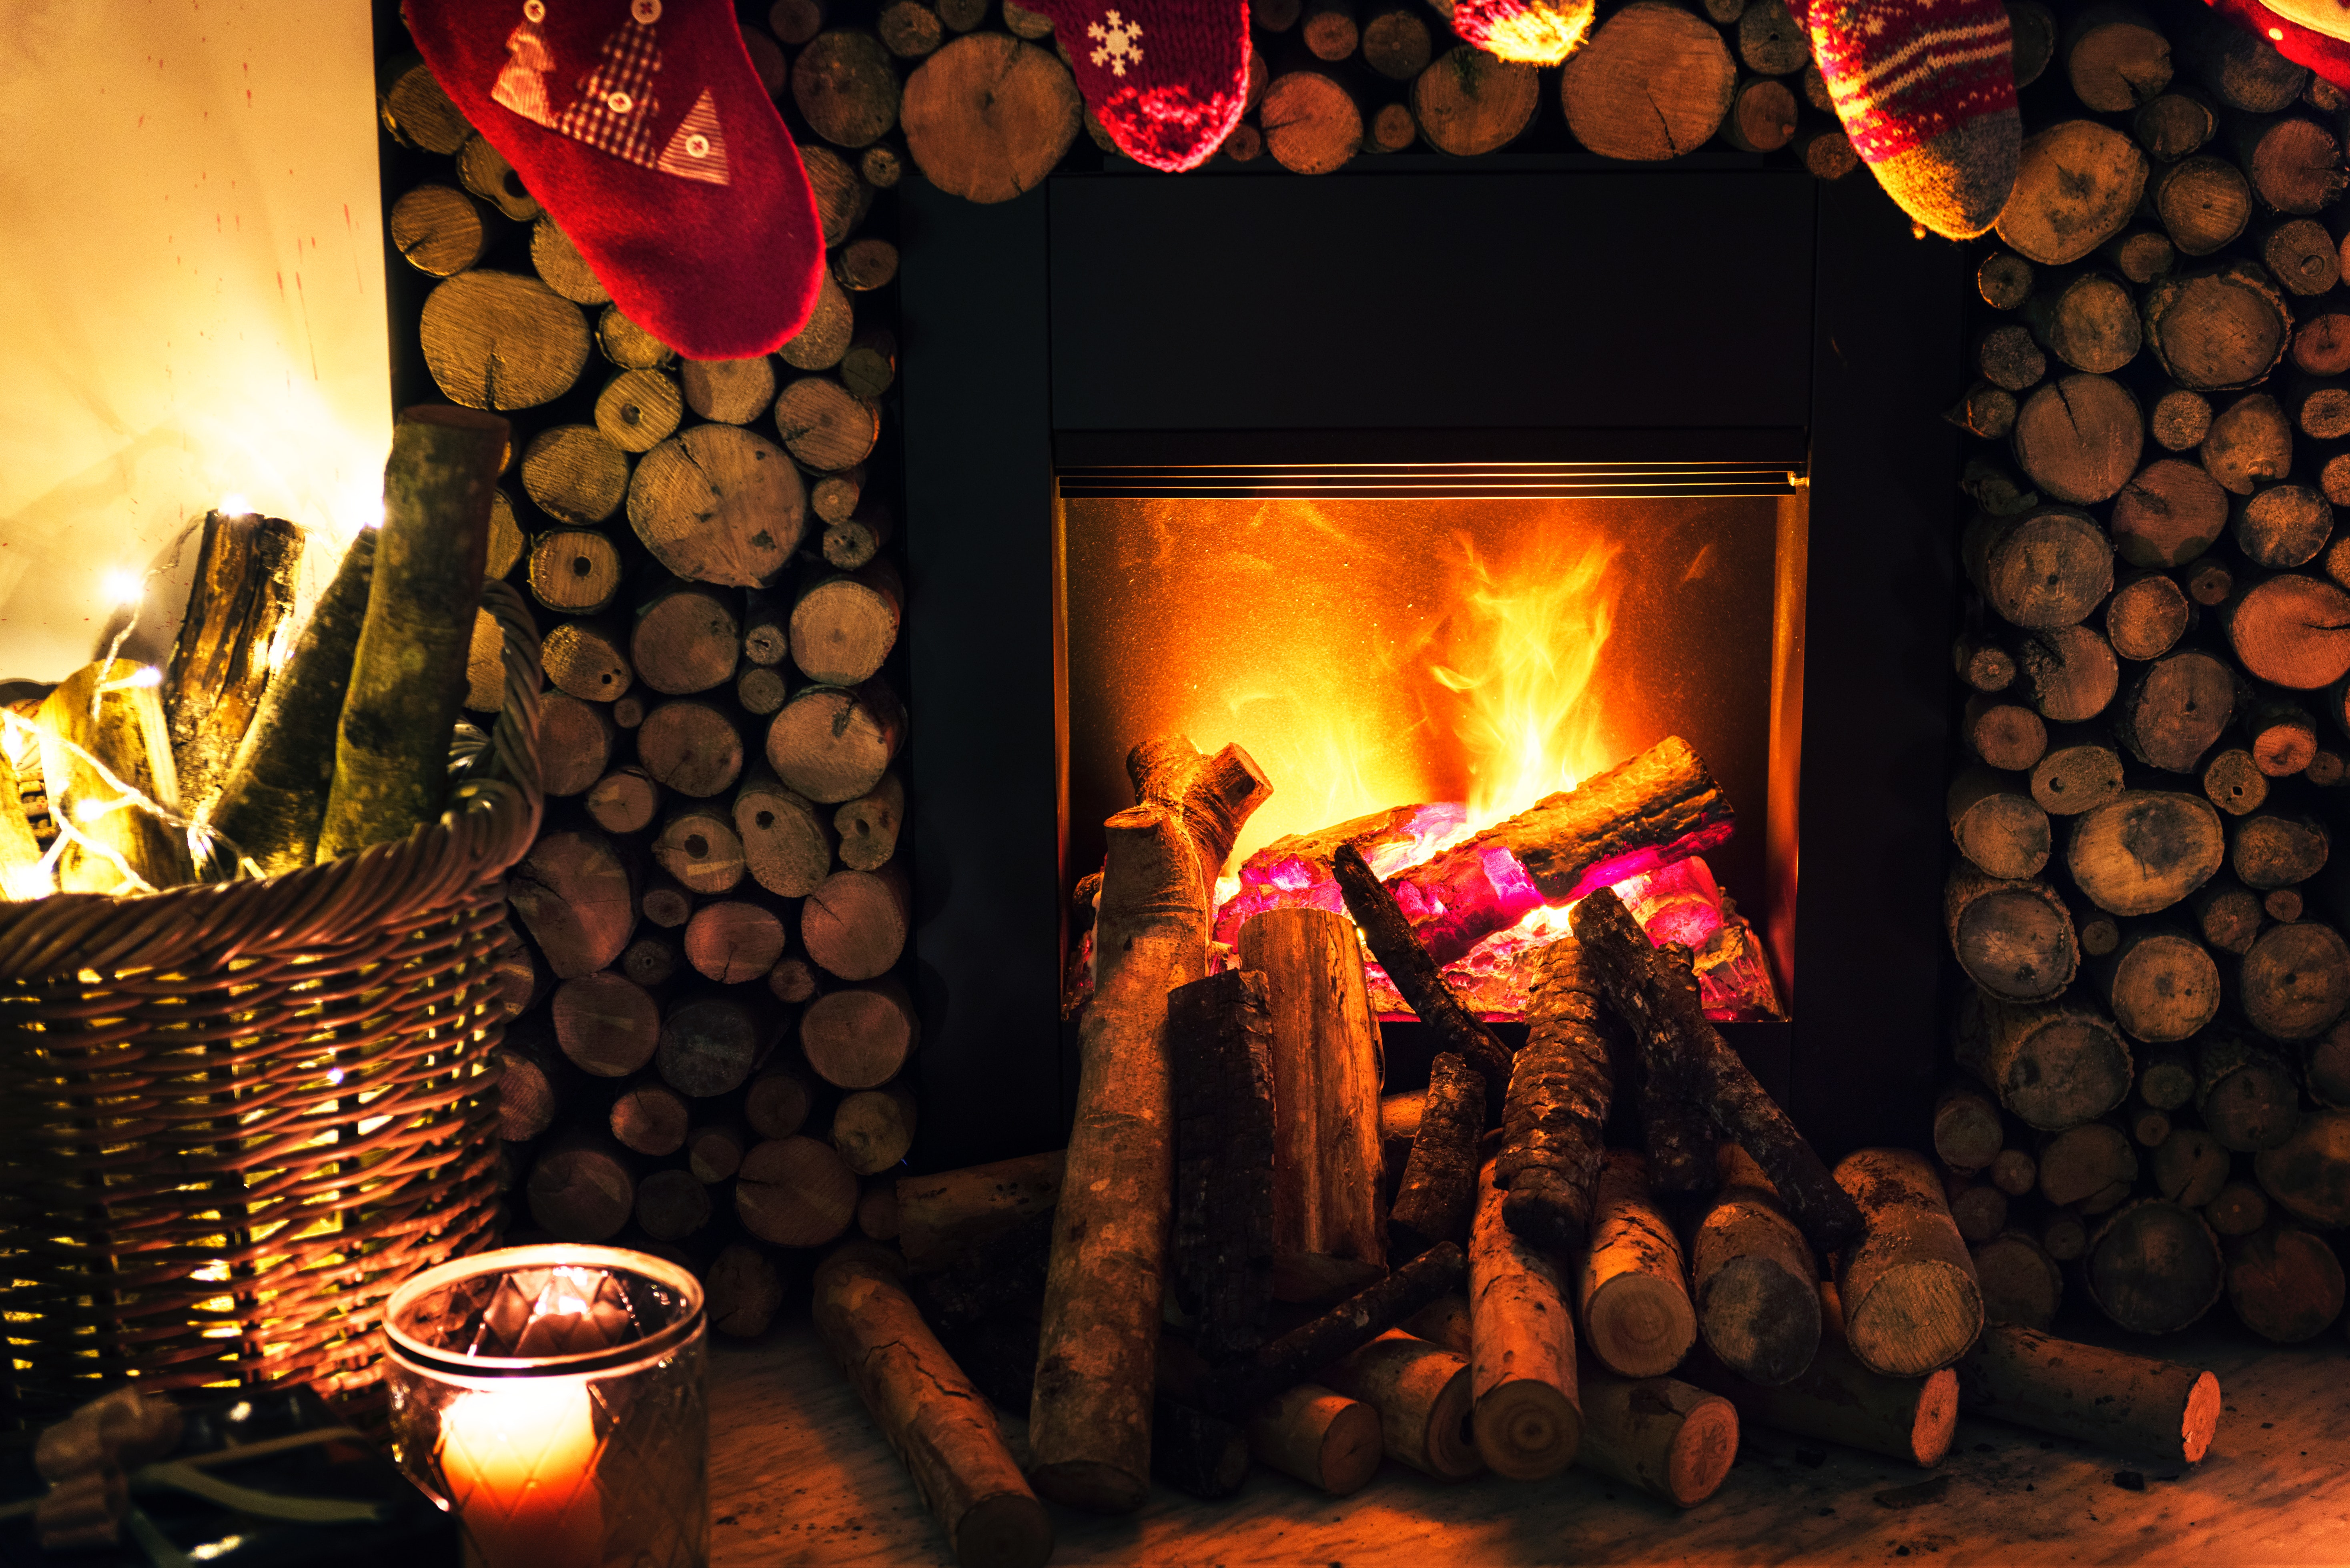 Brown Beside Fireplace Near Brown Wicker Basket, Basket, Holiday, Woods, Warmth, HQ Photo